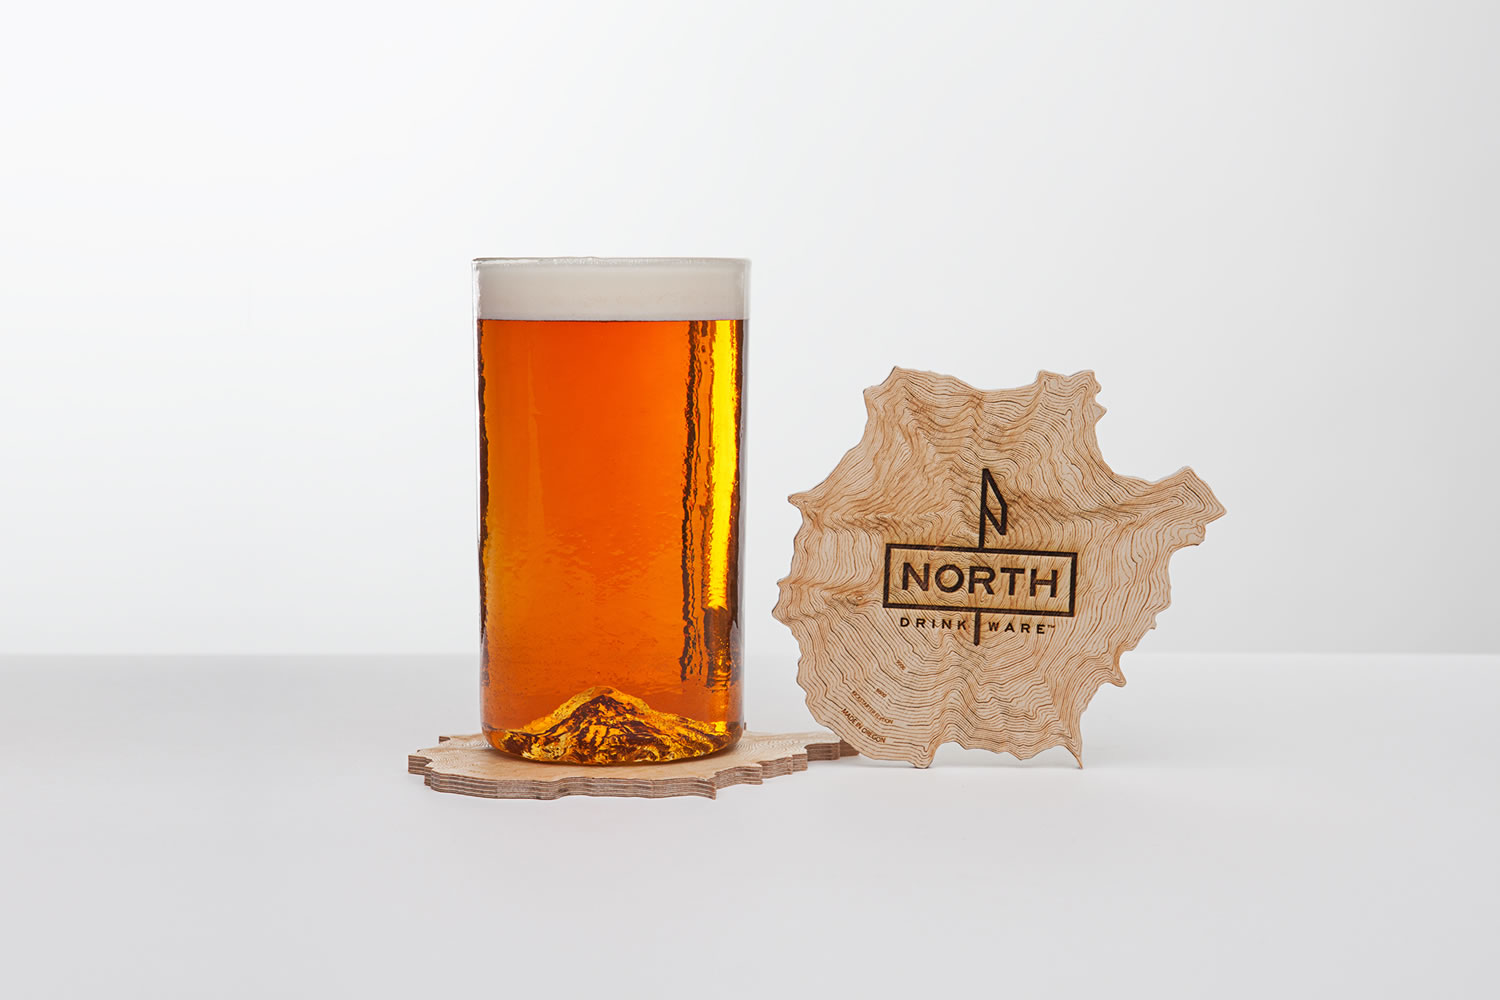 beer cup, NORTH DRINKWARE